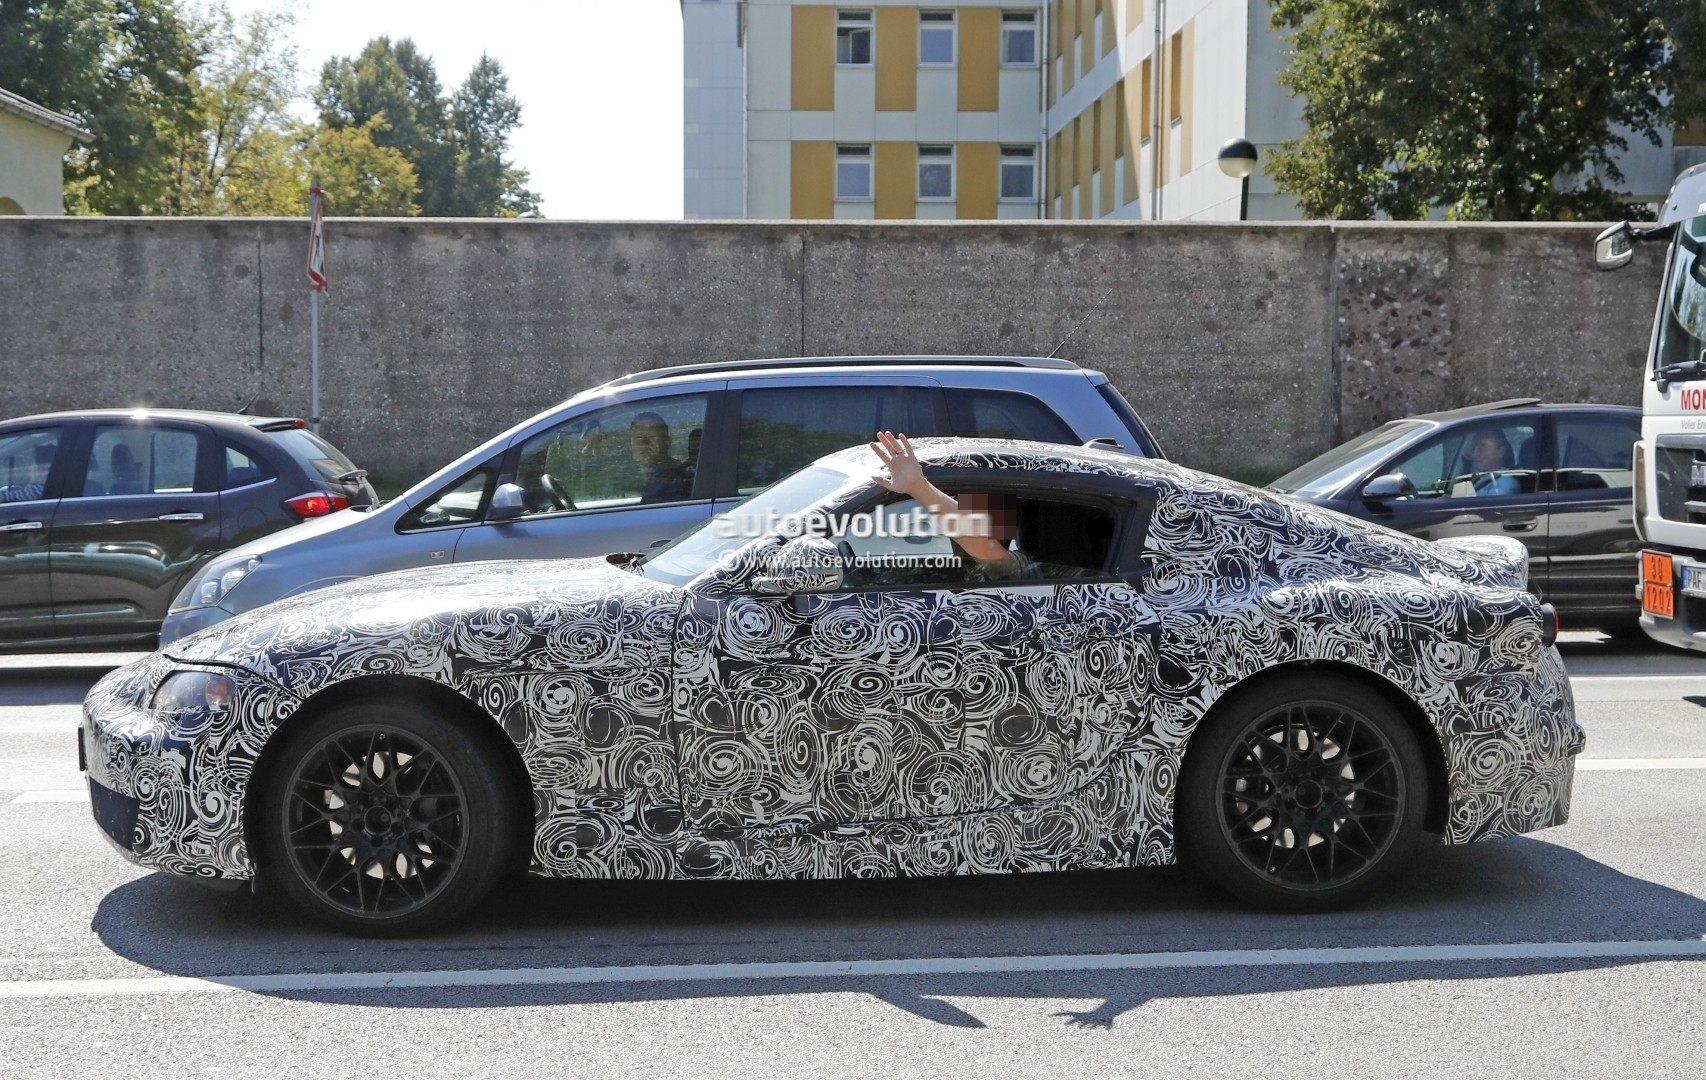 New 2018 Toyota Supra Makes Spyshot Debut, Coupe Prototype ...